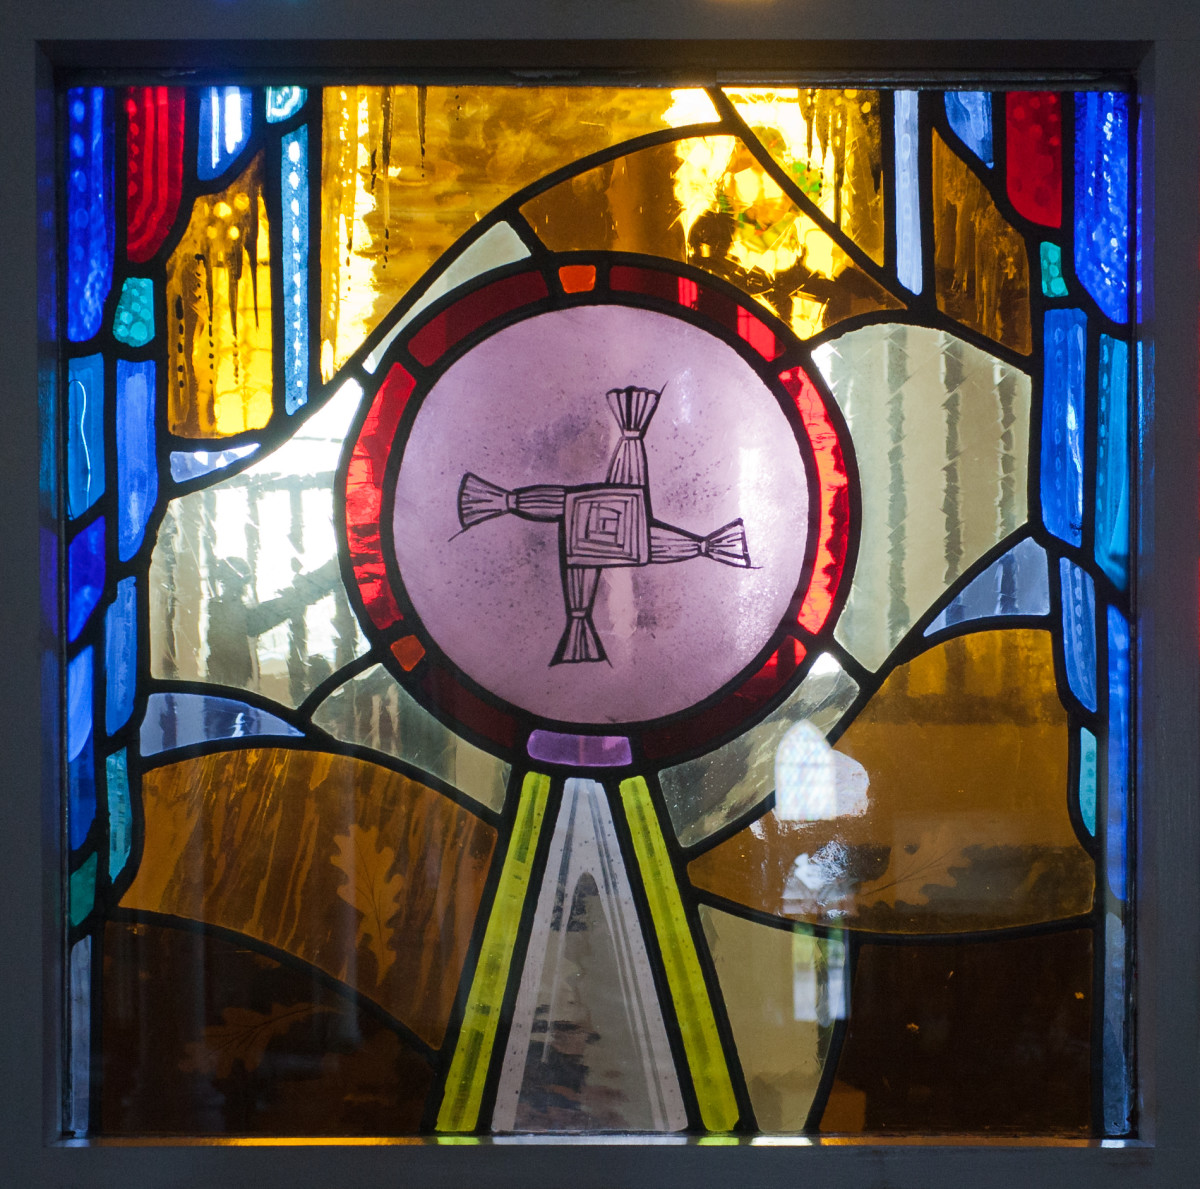 This stained glass, by Andreas F. Borchert, depicts St. Brigid's Cross.